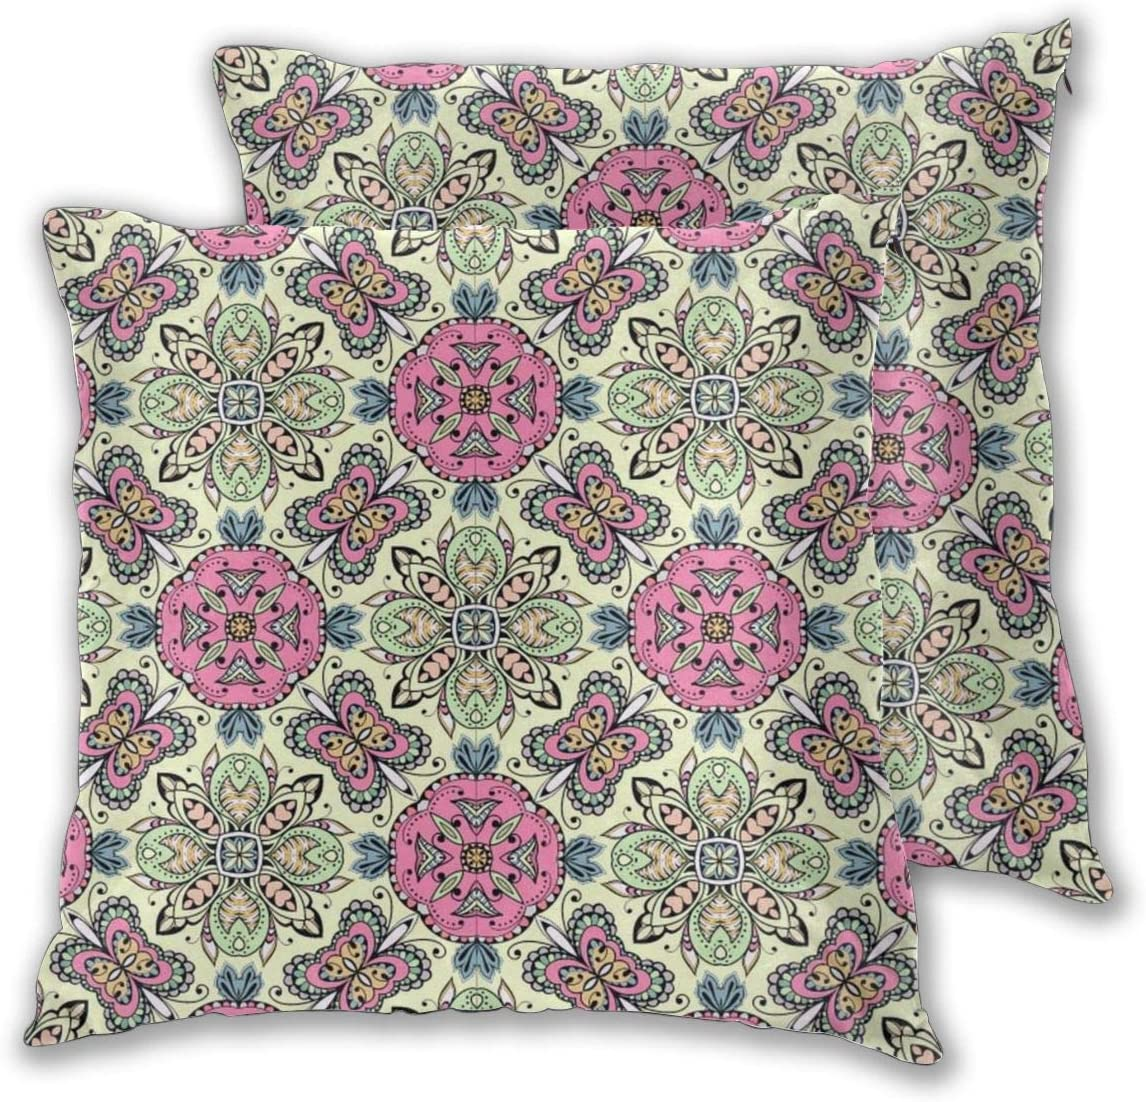 MOONLIT DECAYED Bohemian Psychedelic Mandala Decorative Throw Pillow Covers, Stain-Resistant Soft Solid Square Cushion Cases for Couch Sofa Bedroom Kid¡¯s Room Car Office, 22x22 Inches